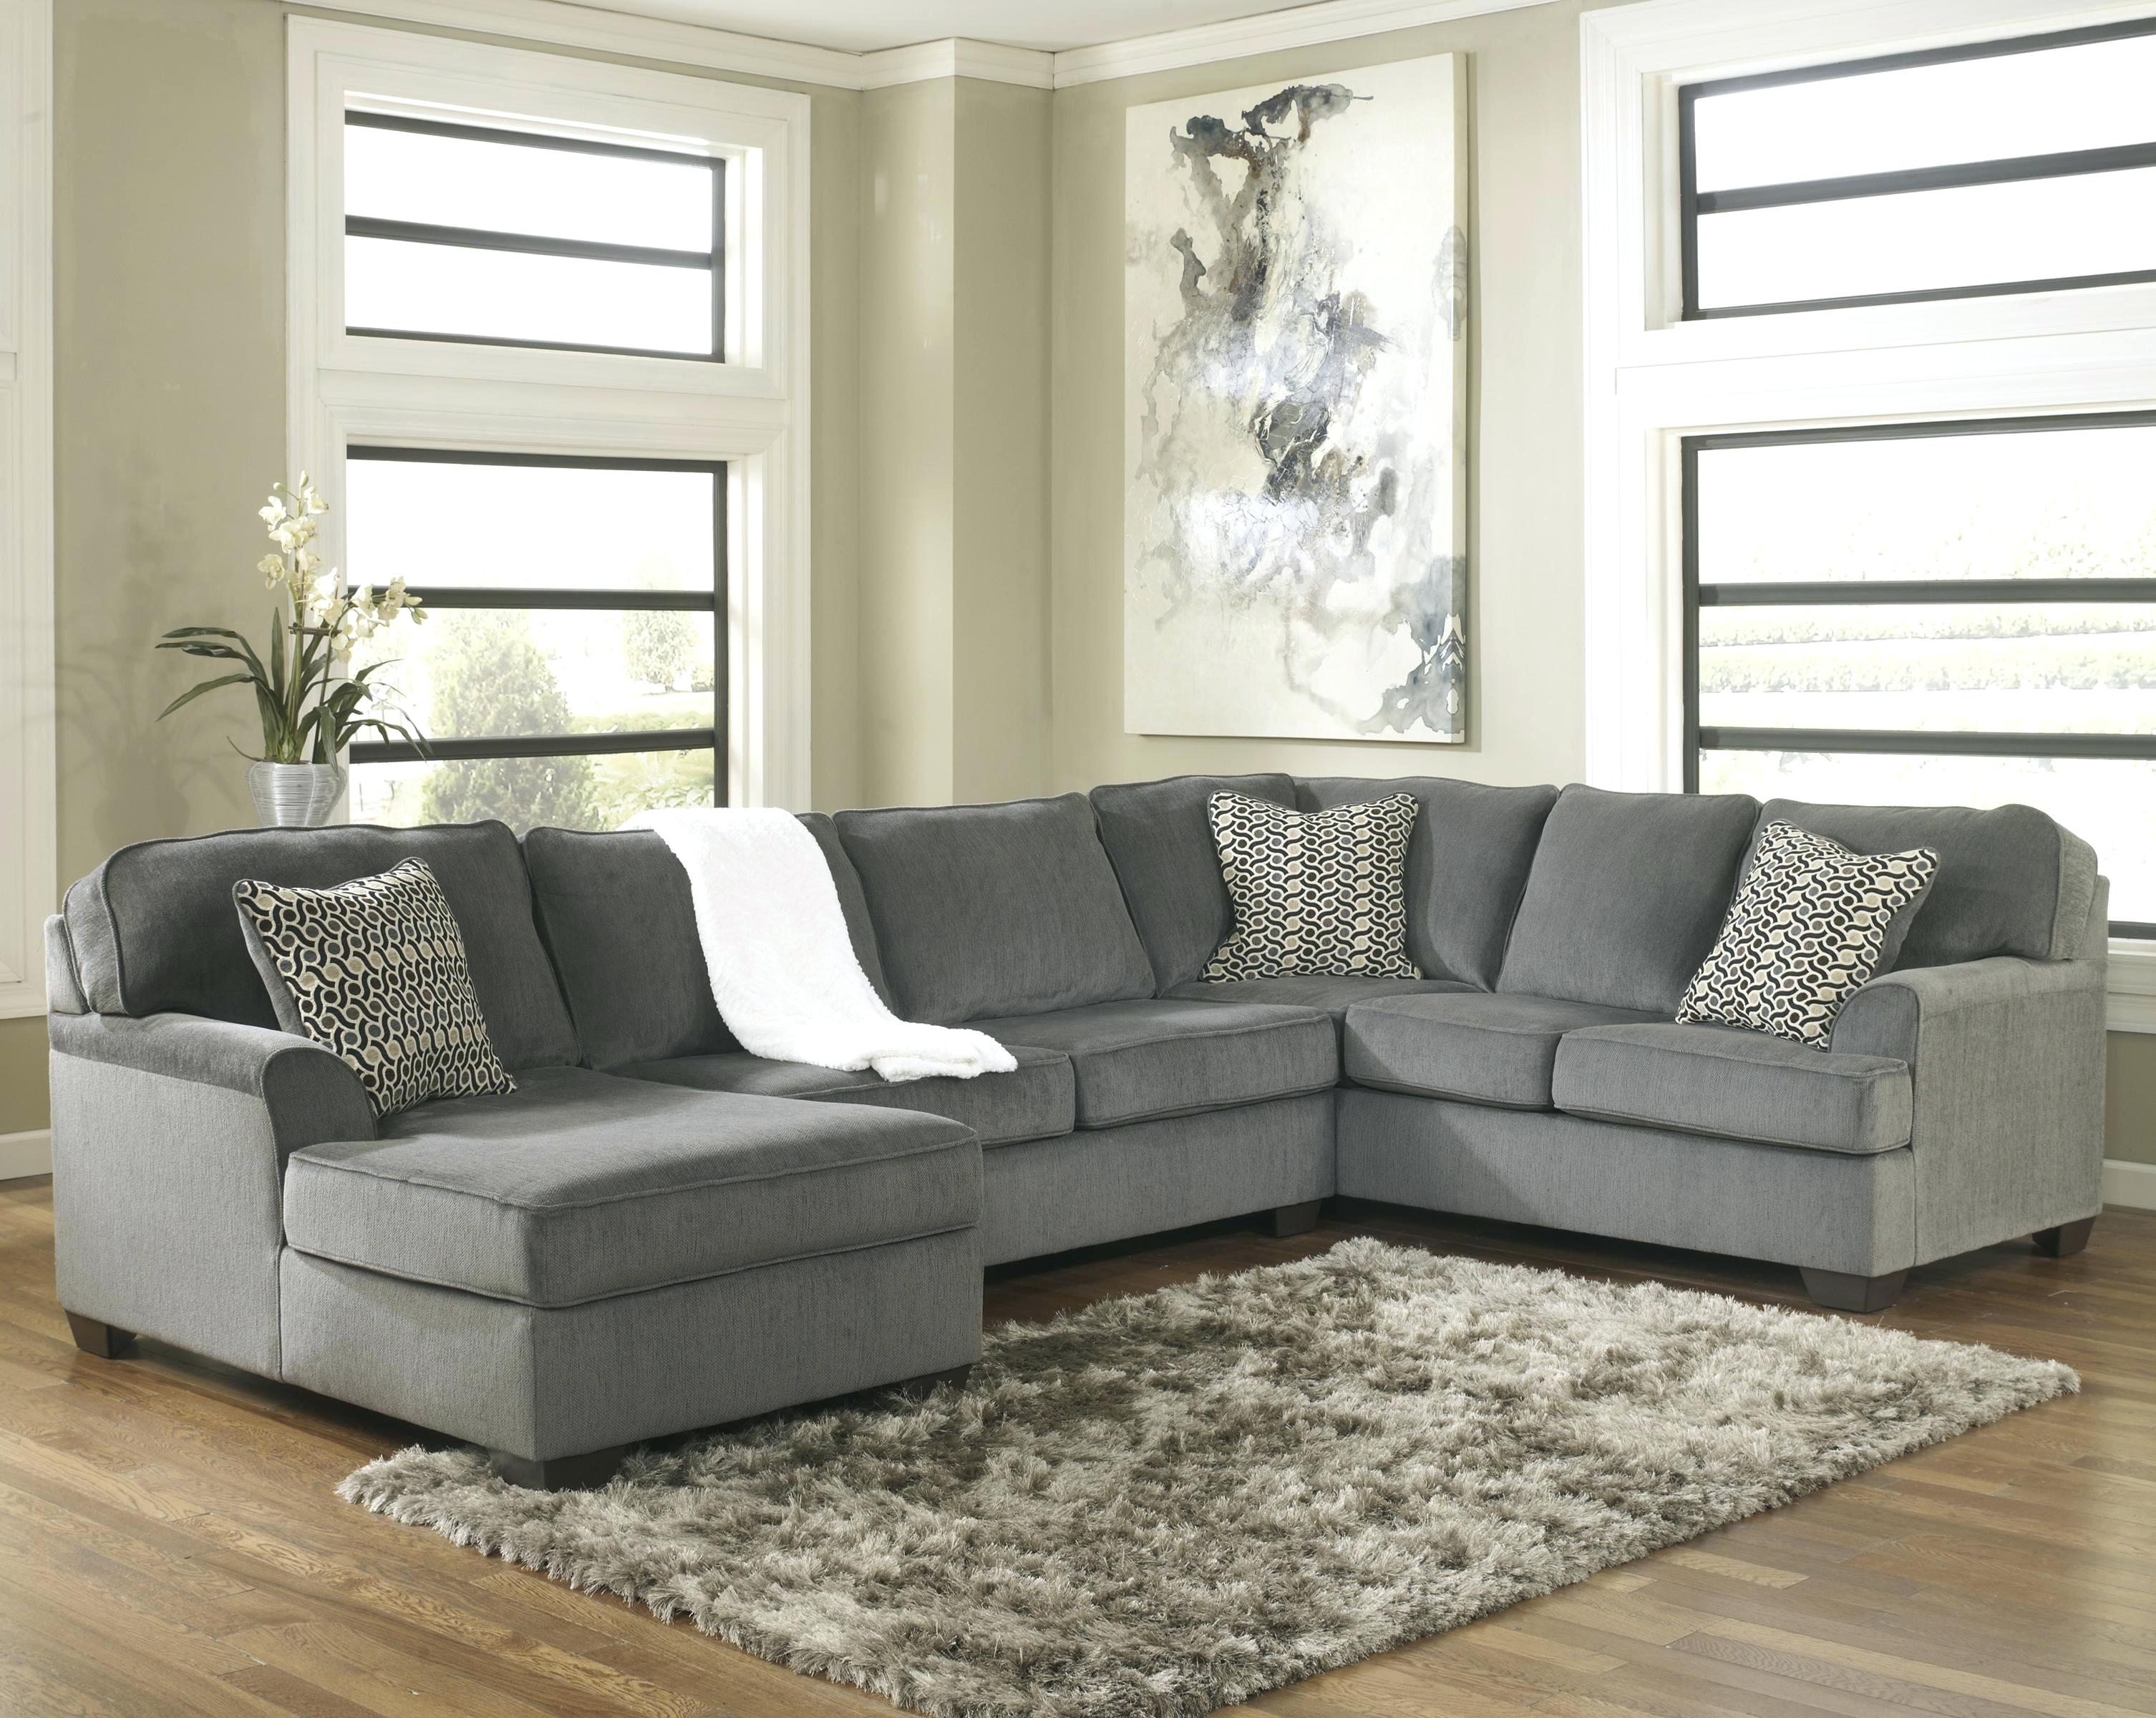 ashley furniture fayetteville nc furniture smoke contemporary 3 piece sectional with left chaise ashley furniture fayetteville nc hours